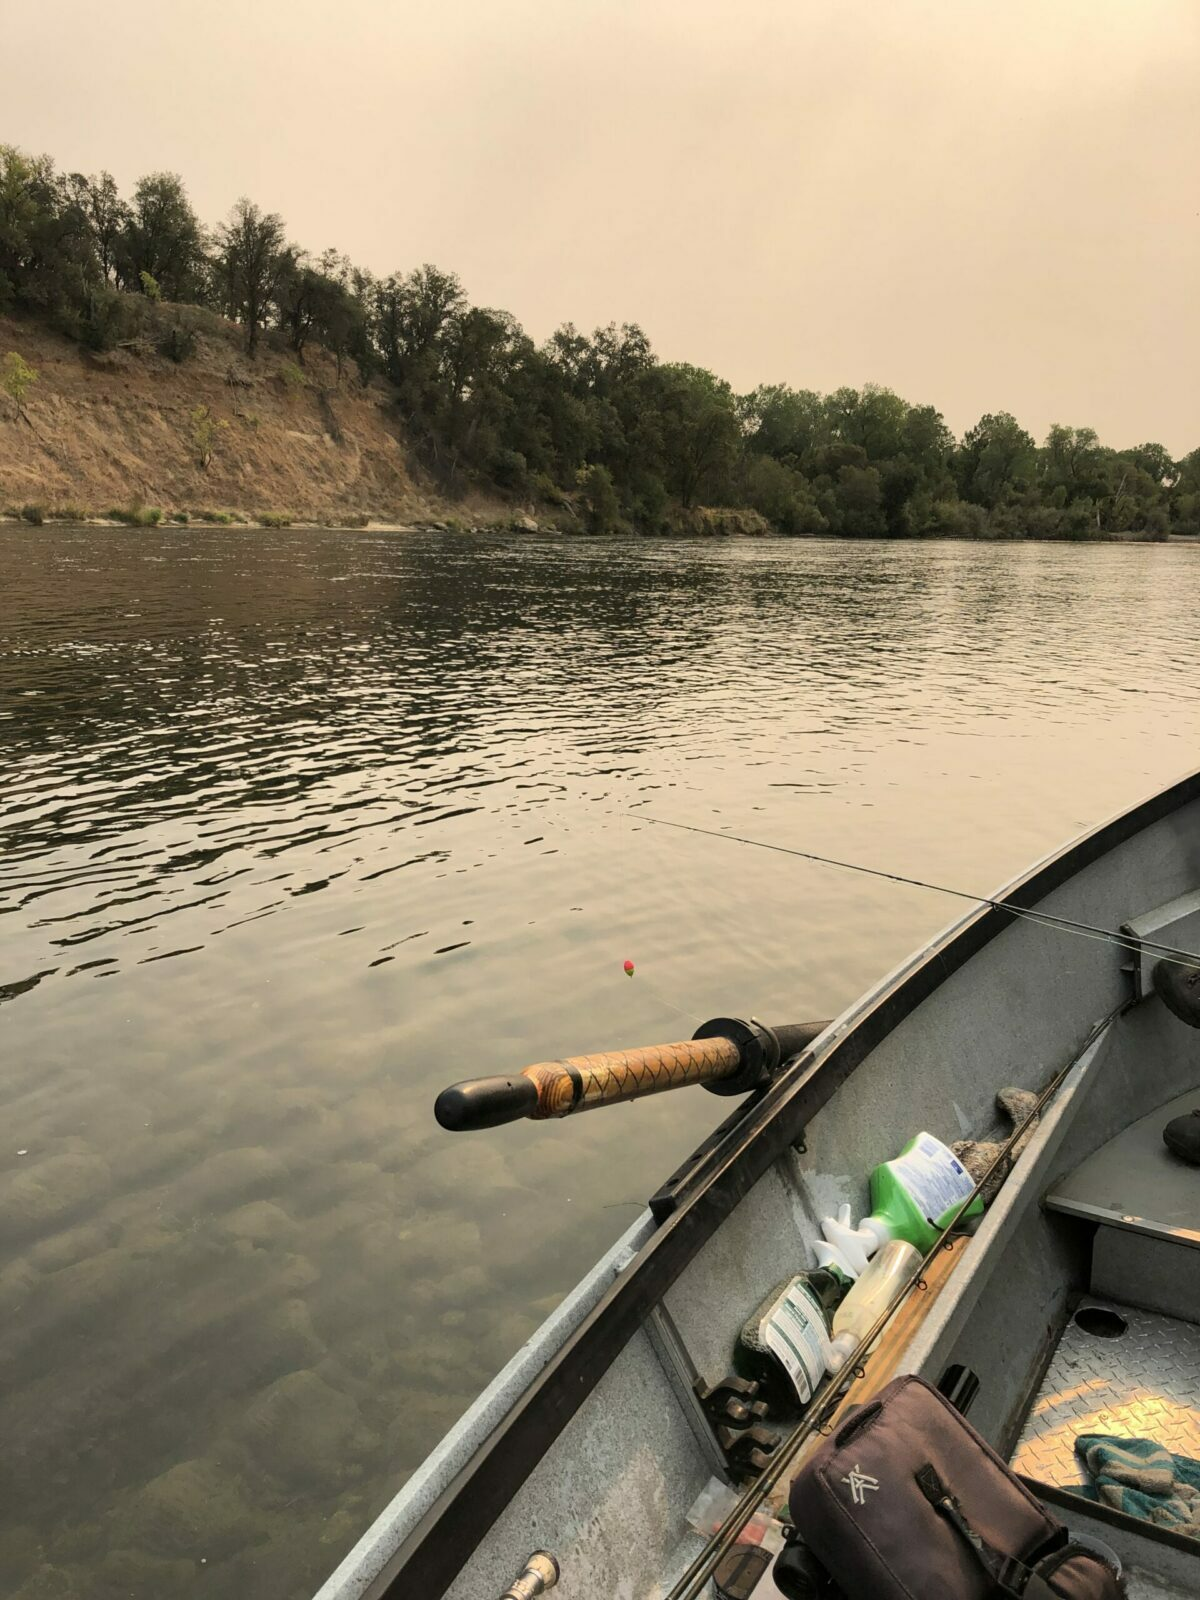 view of the Sacramento River from a fishing boat